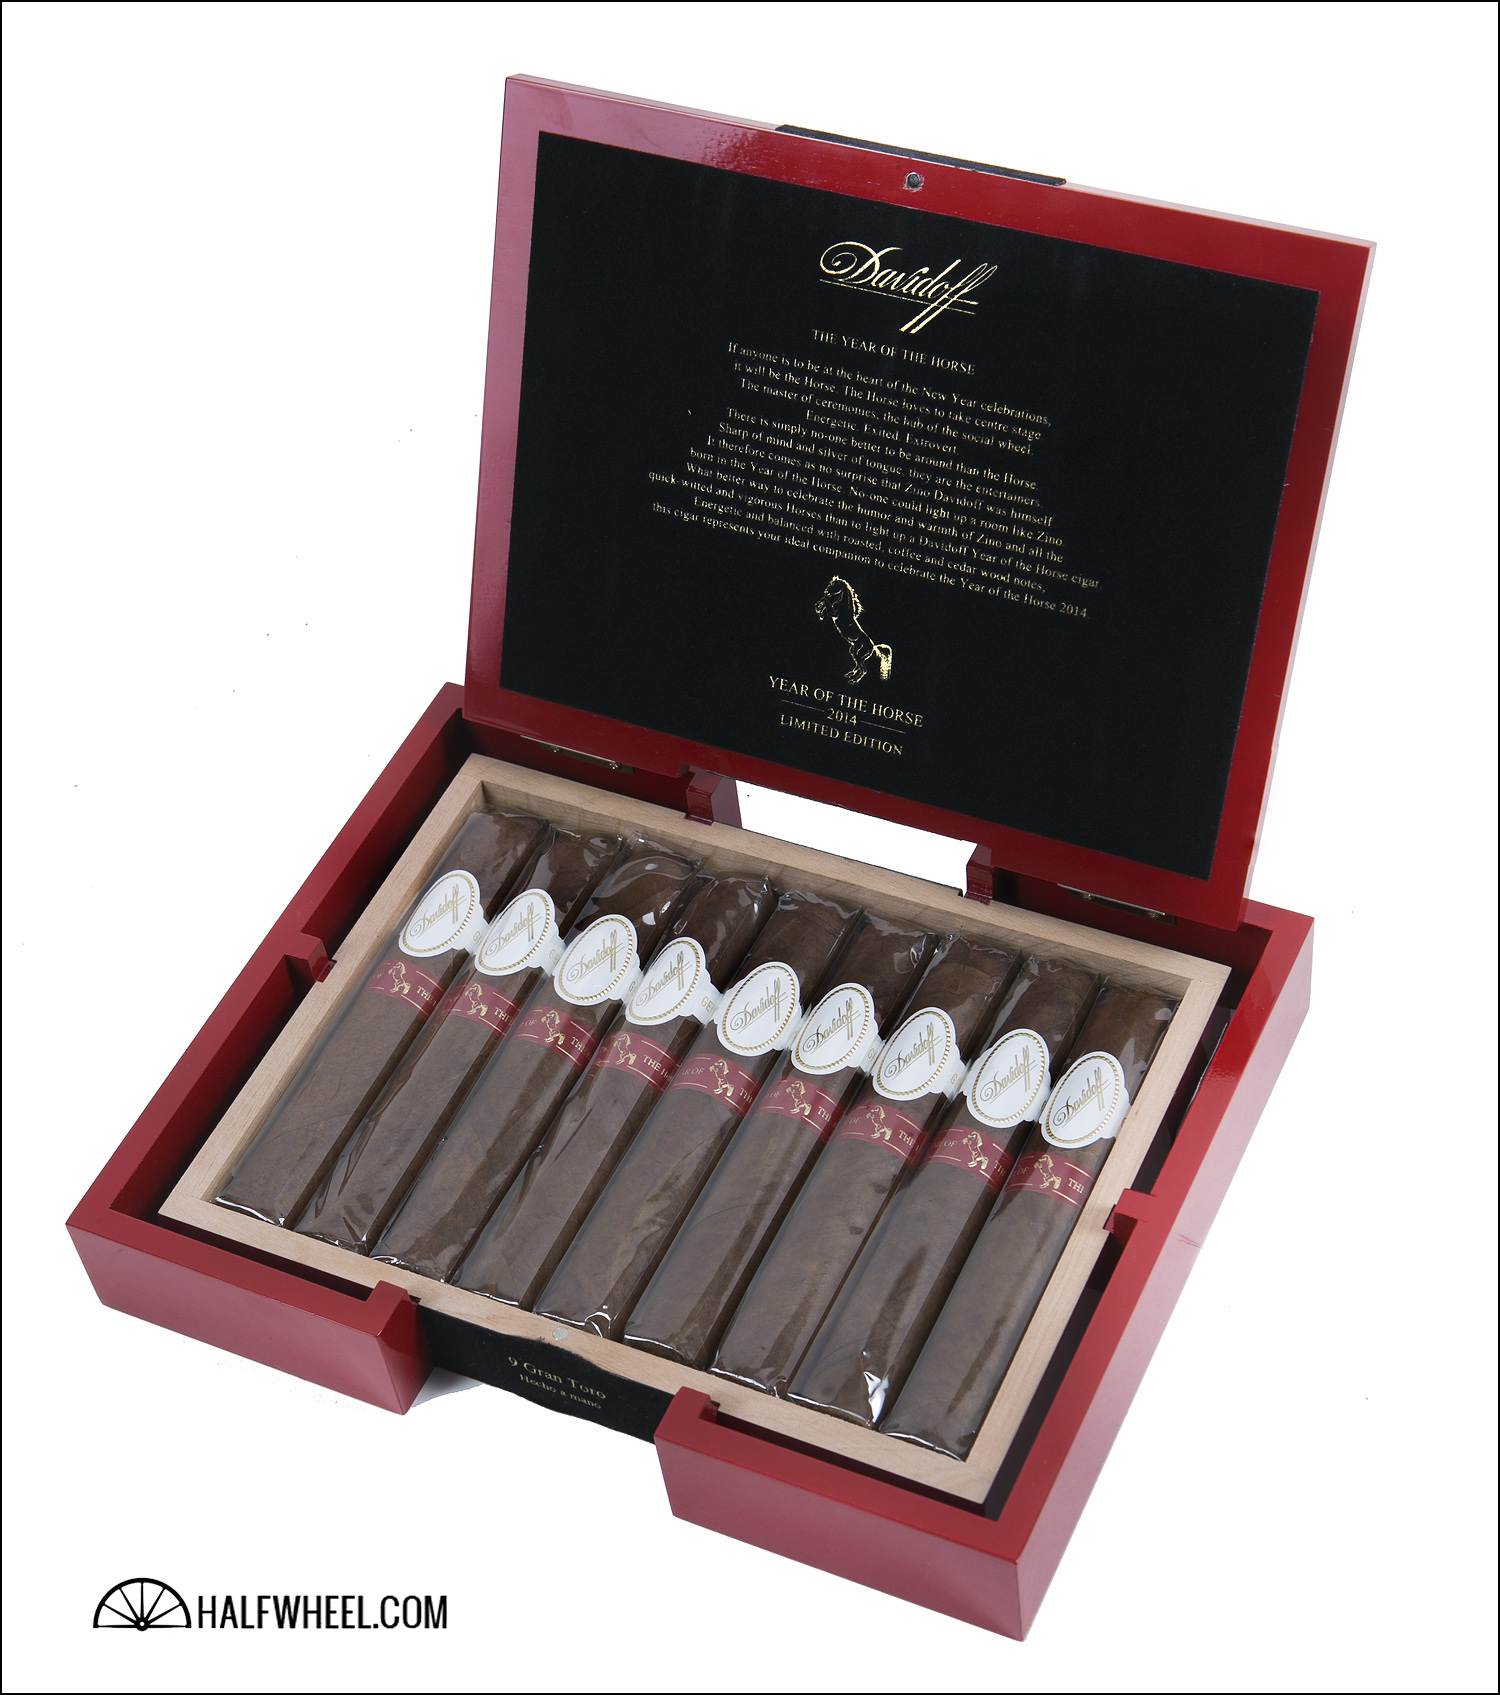 Davidoff Limited Edition 2014 Year of the Horse Box 3